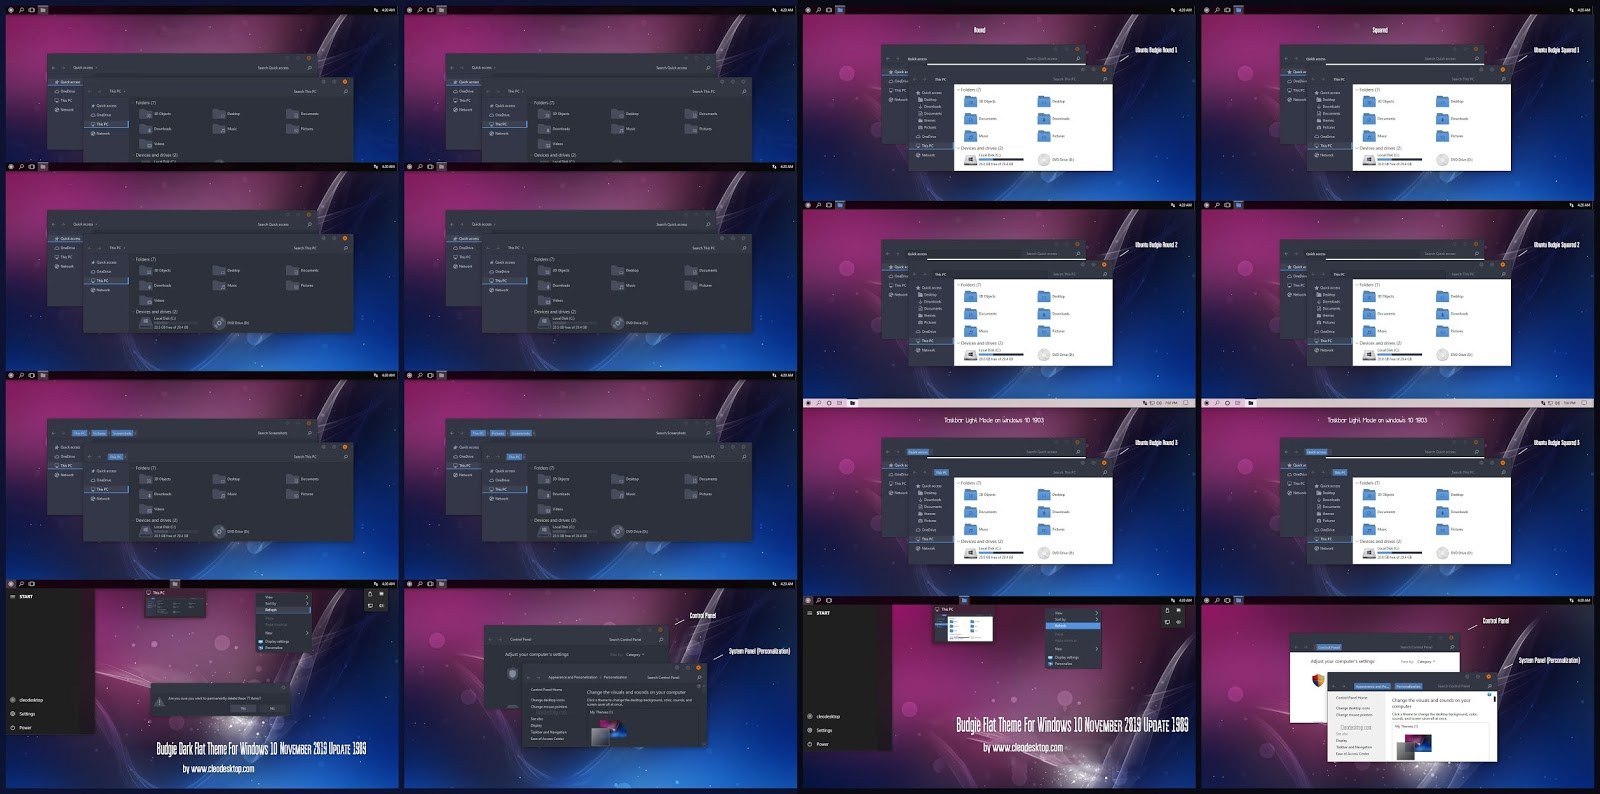 Budgie Flat Dark And Light Combo Pack Theme And Icon For Windows10 1909